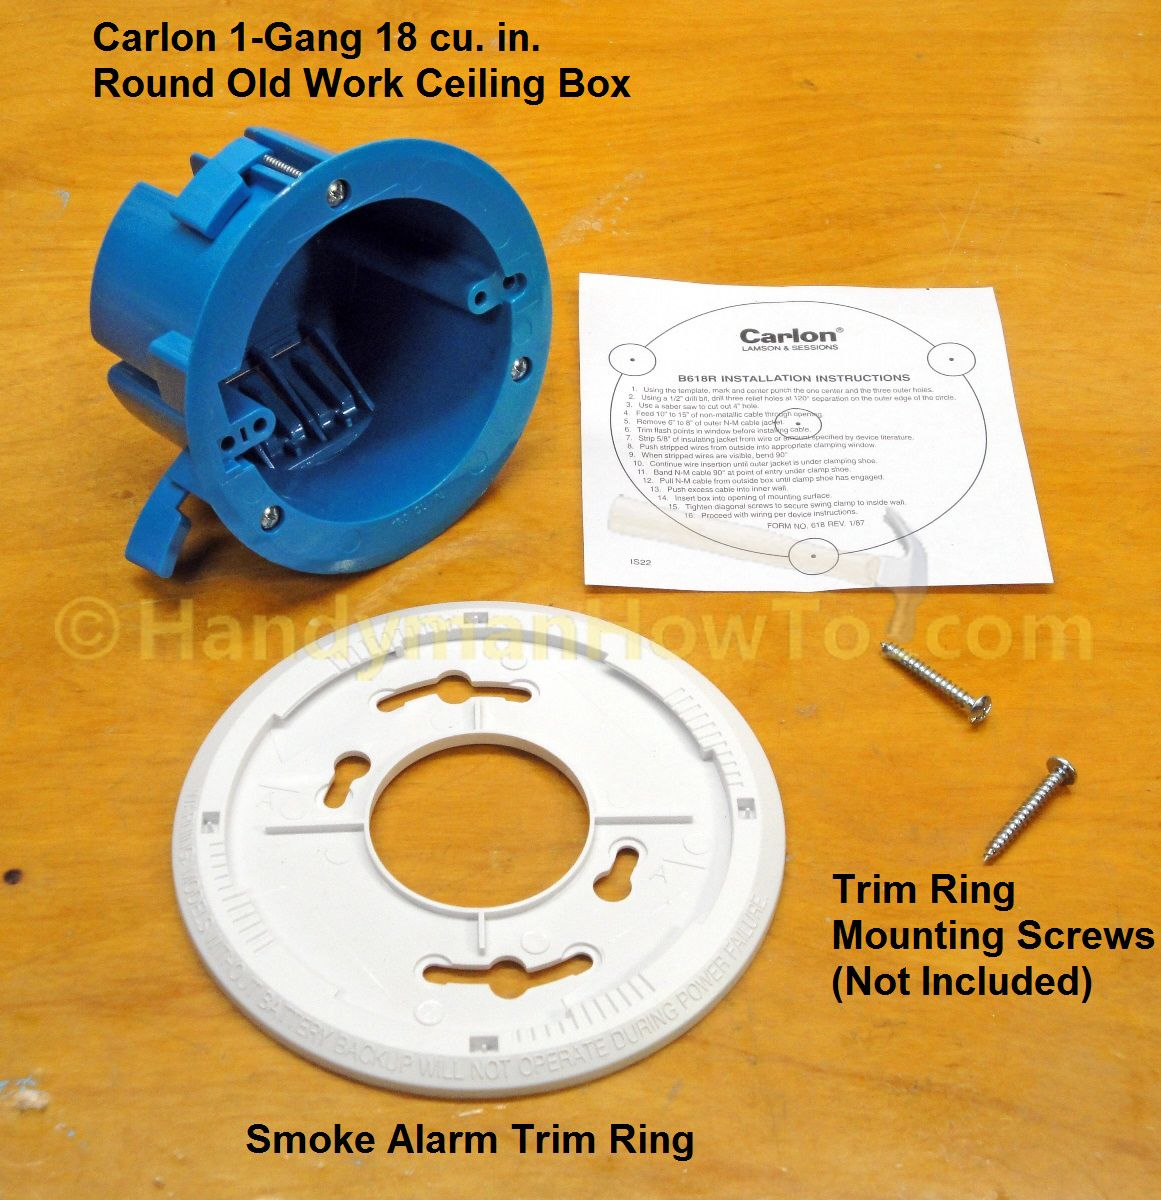 Carlton B618r Round Old Work Ceiling Box With Smoke Alarm Trim Plate